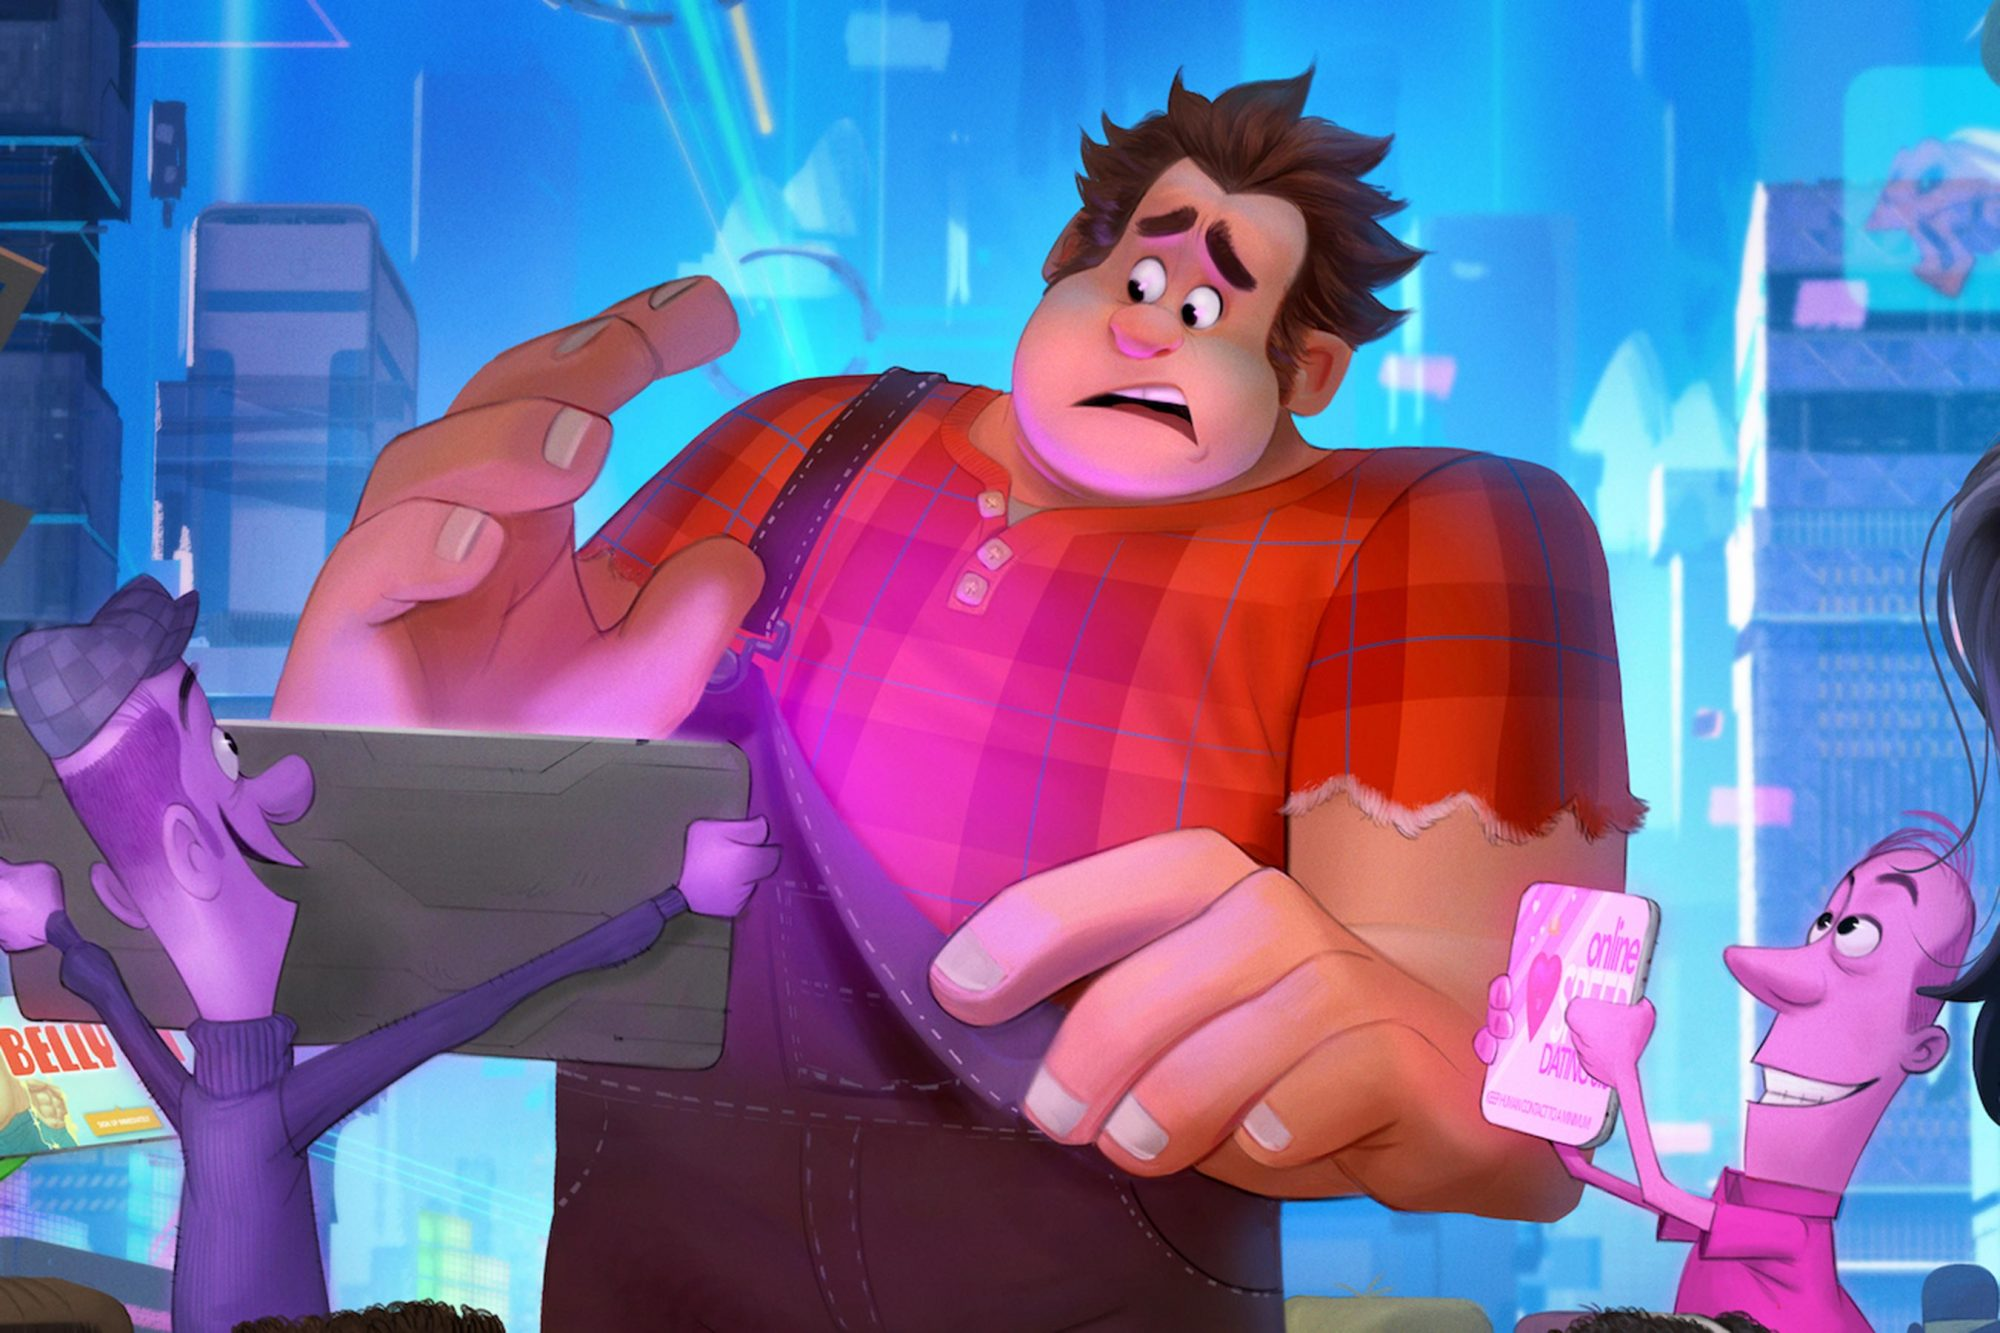 Wreck-it_Ralph_2_2ndlook_cl_adj